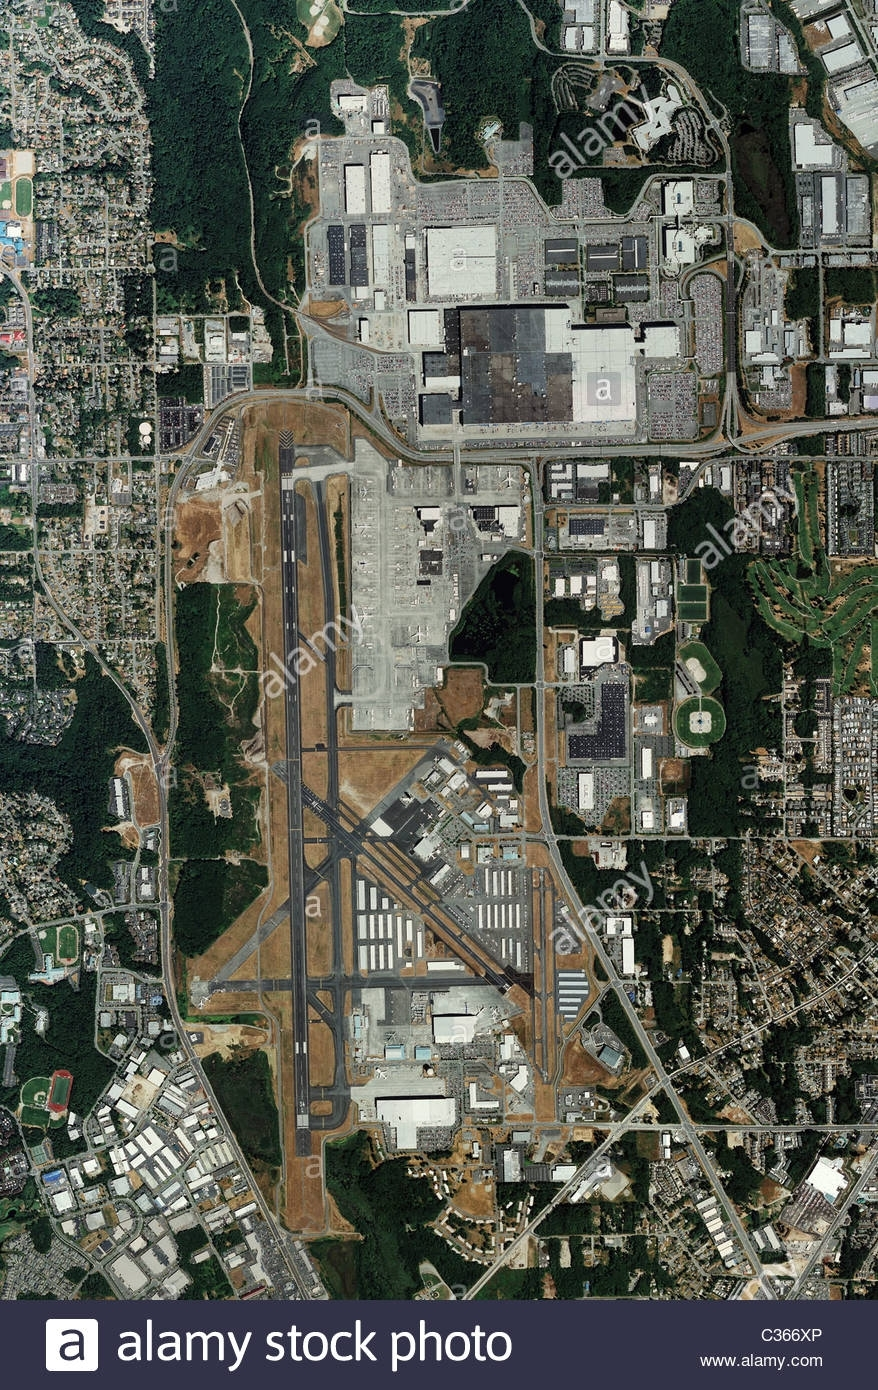 Aerial Map View Boeing Everett Factory And Paine Field regarding Boeing Factory Tour Map